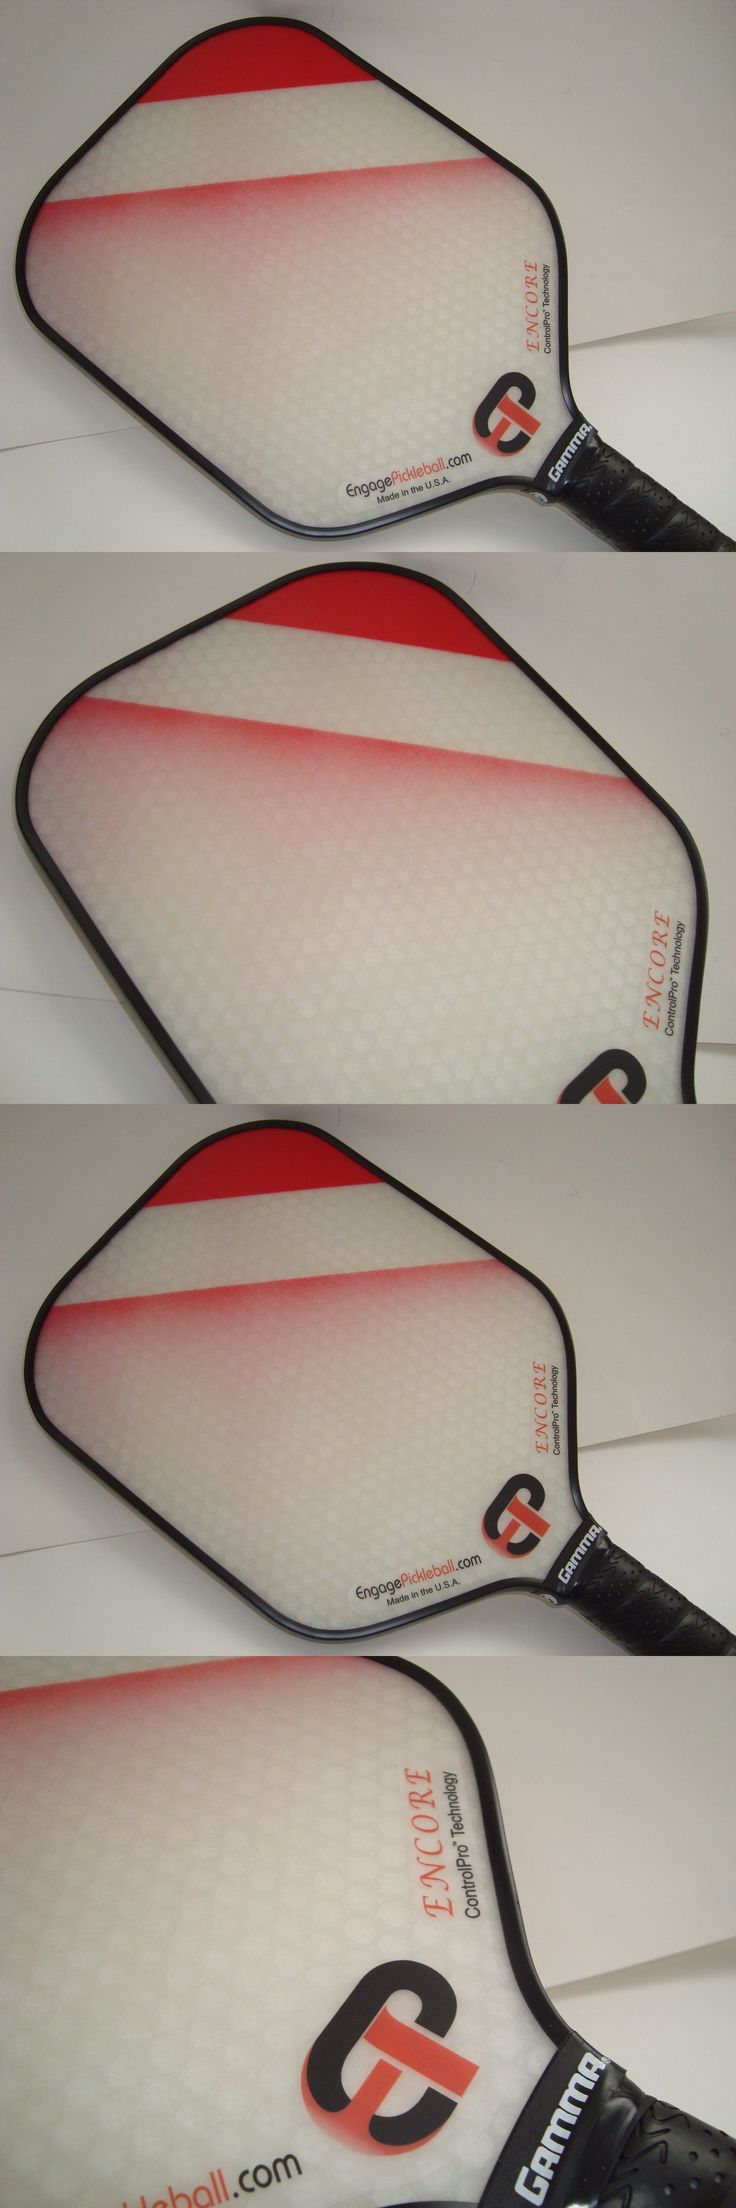 Other Tennis and Racquet Sports 159135: Super New Engage Encore Pickleball Paddle Enhanced Control Spin Red Fade -> BUY IT NOW ONLY: $79 on eBay!